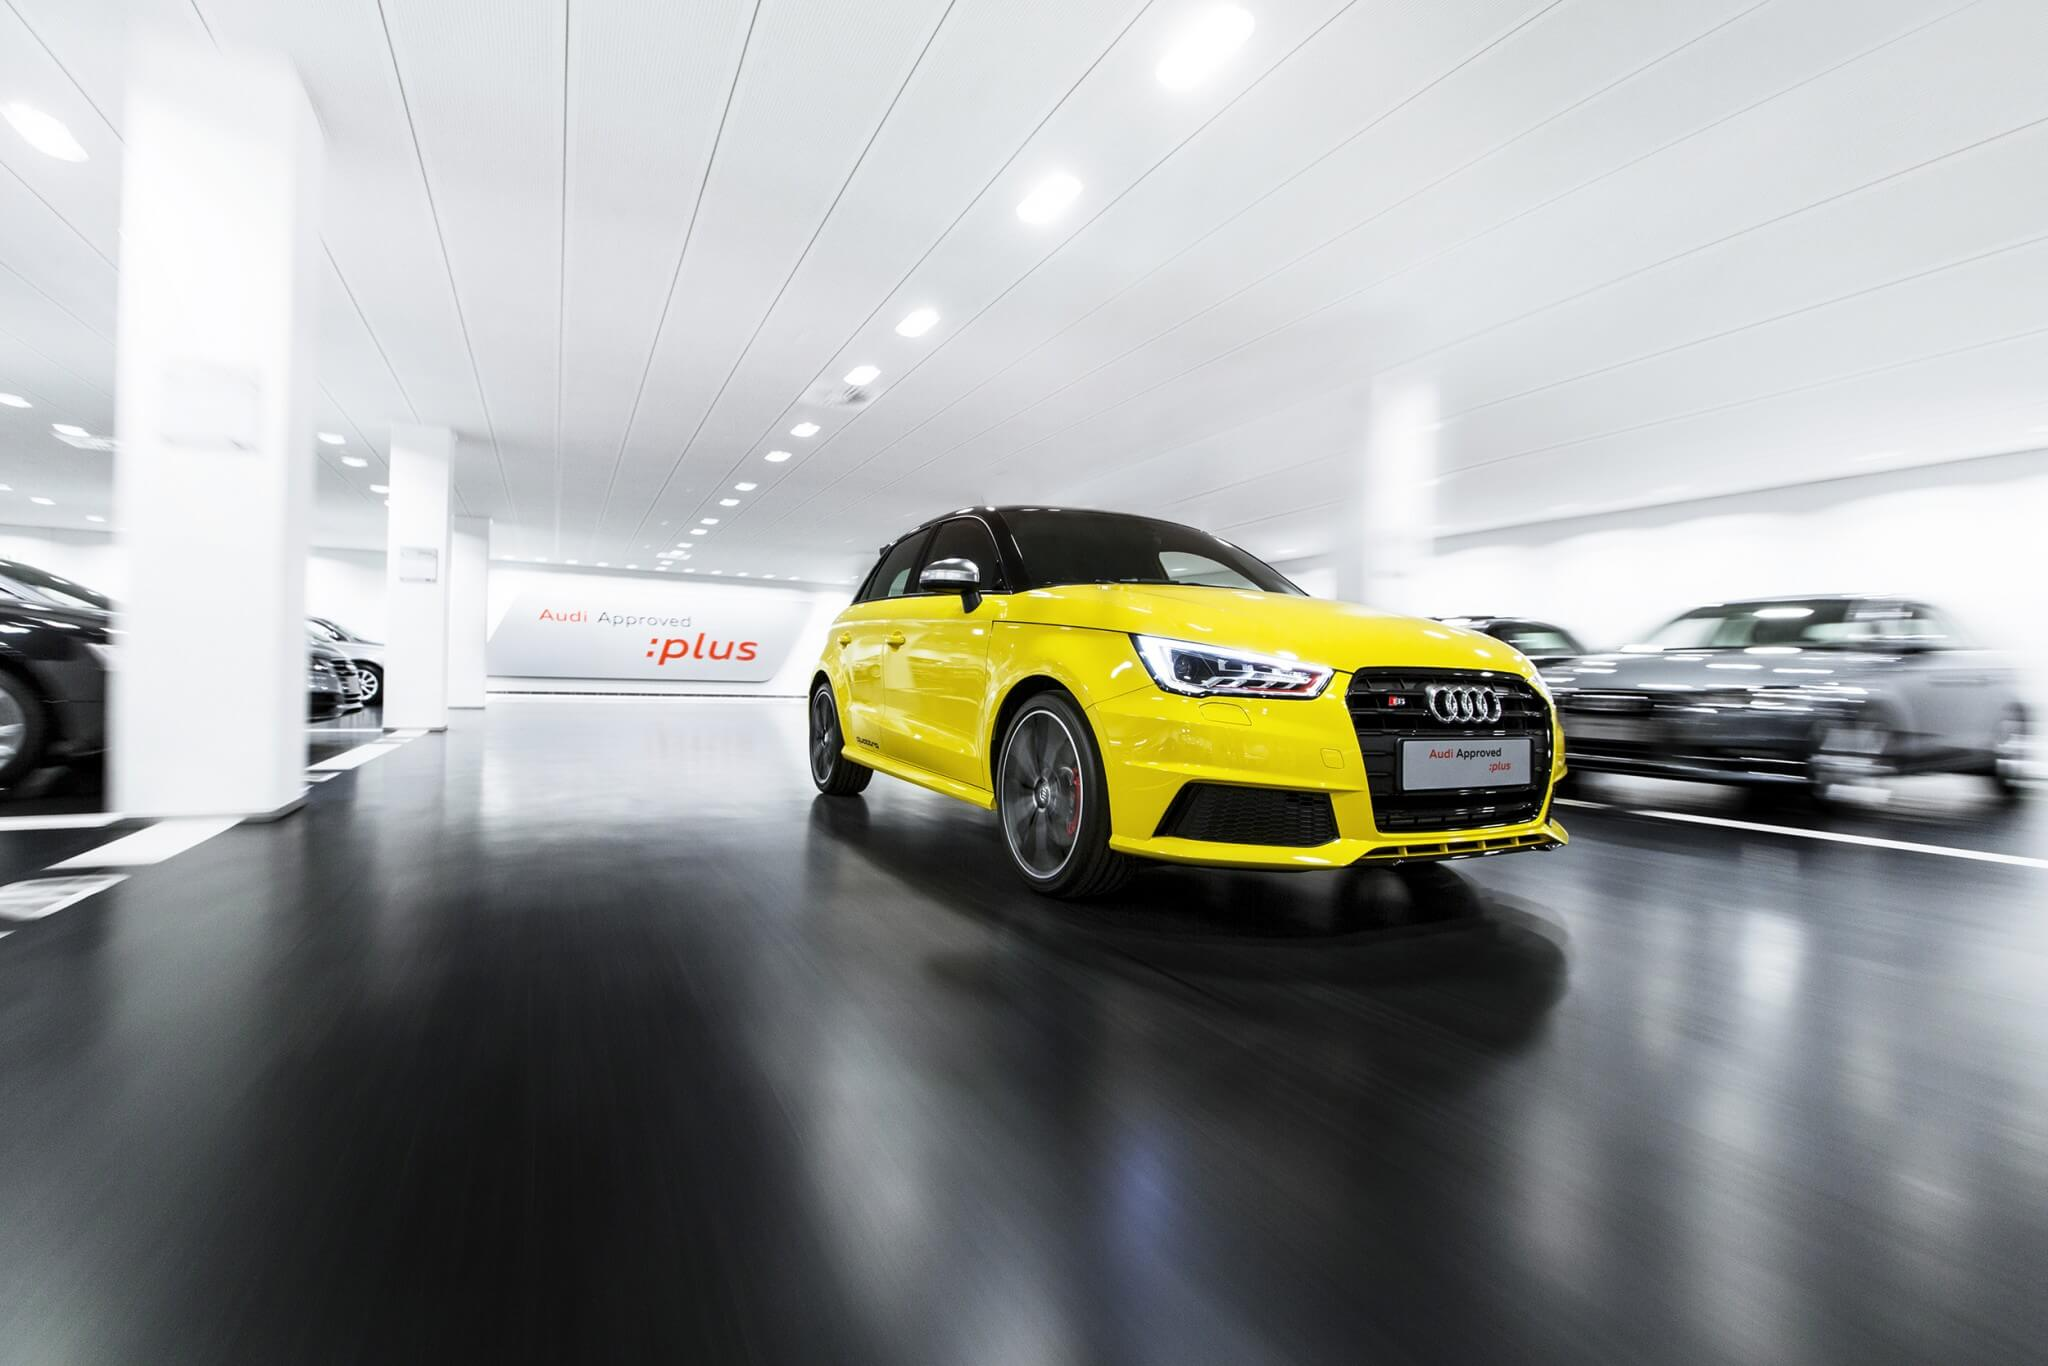 Audi Fredericia car park in Denmark - Audi Approved: plus